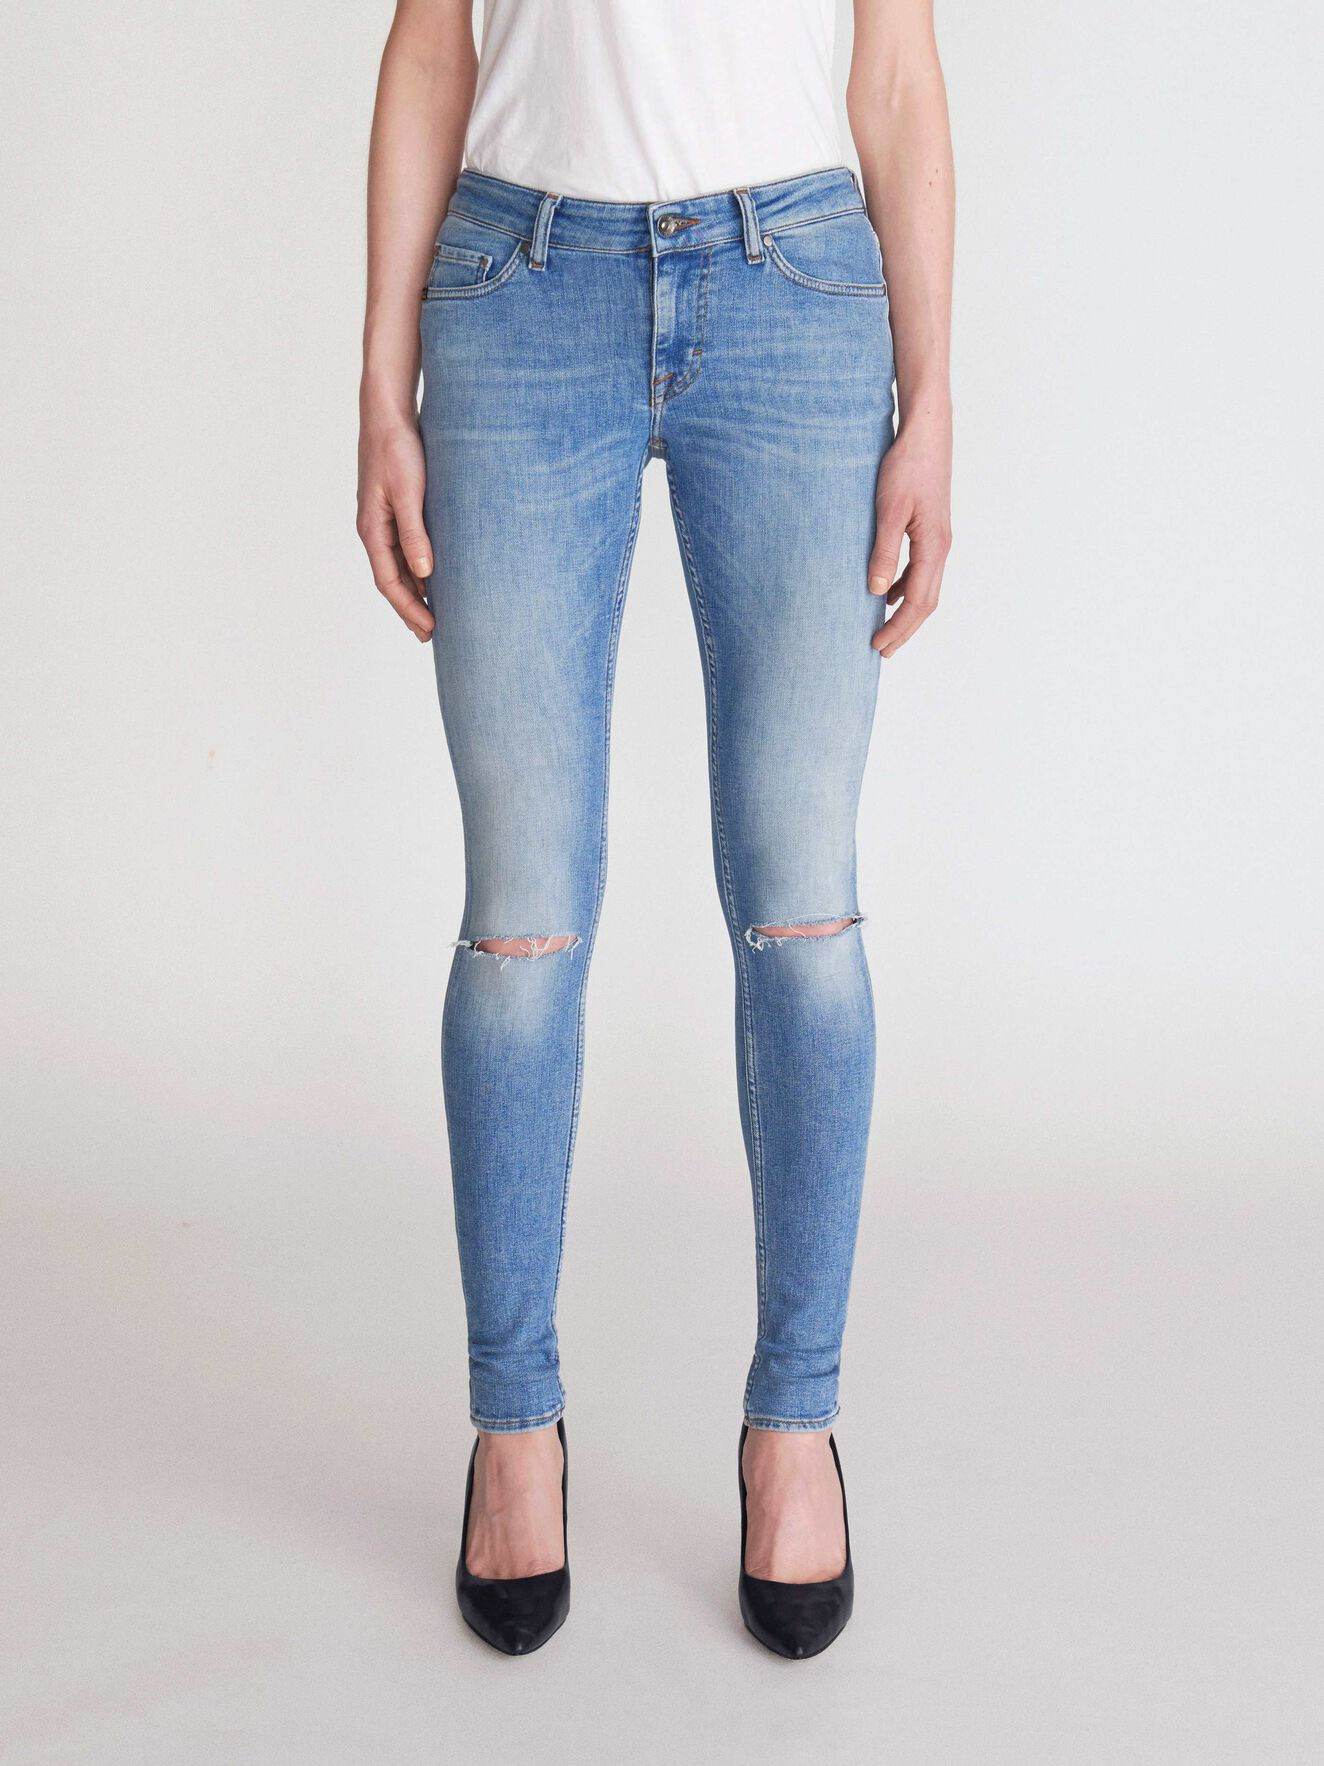 Slender Jeans in Light blue from Tiger of Sweden